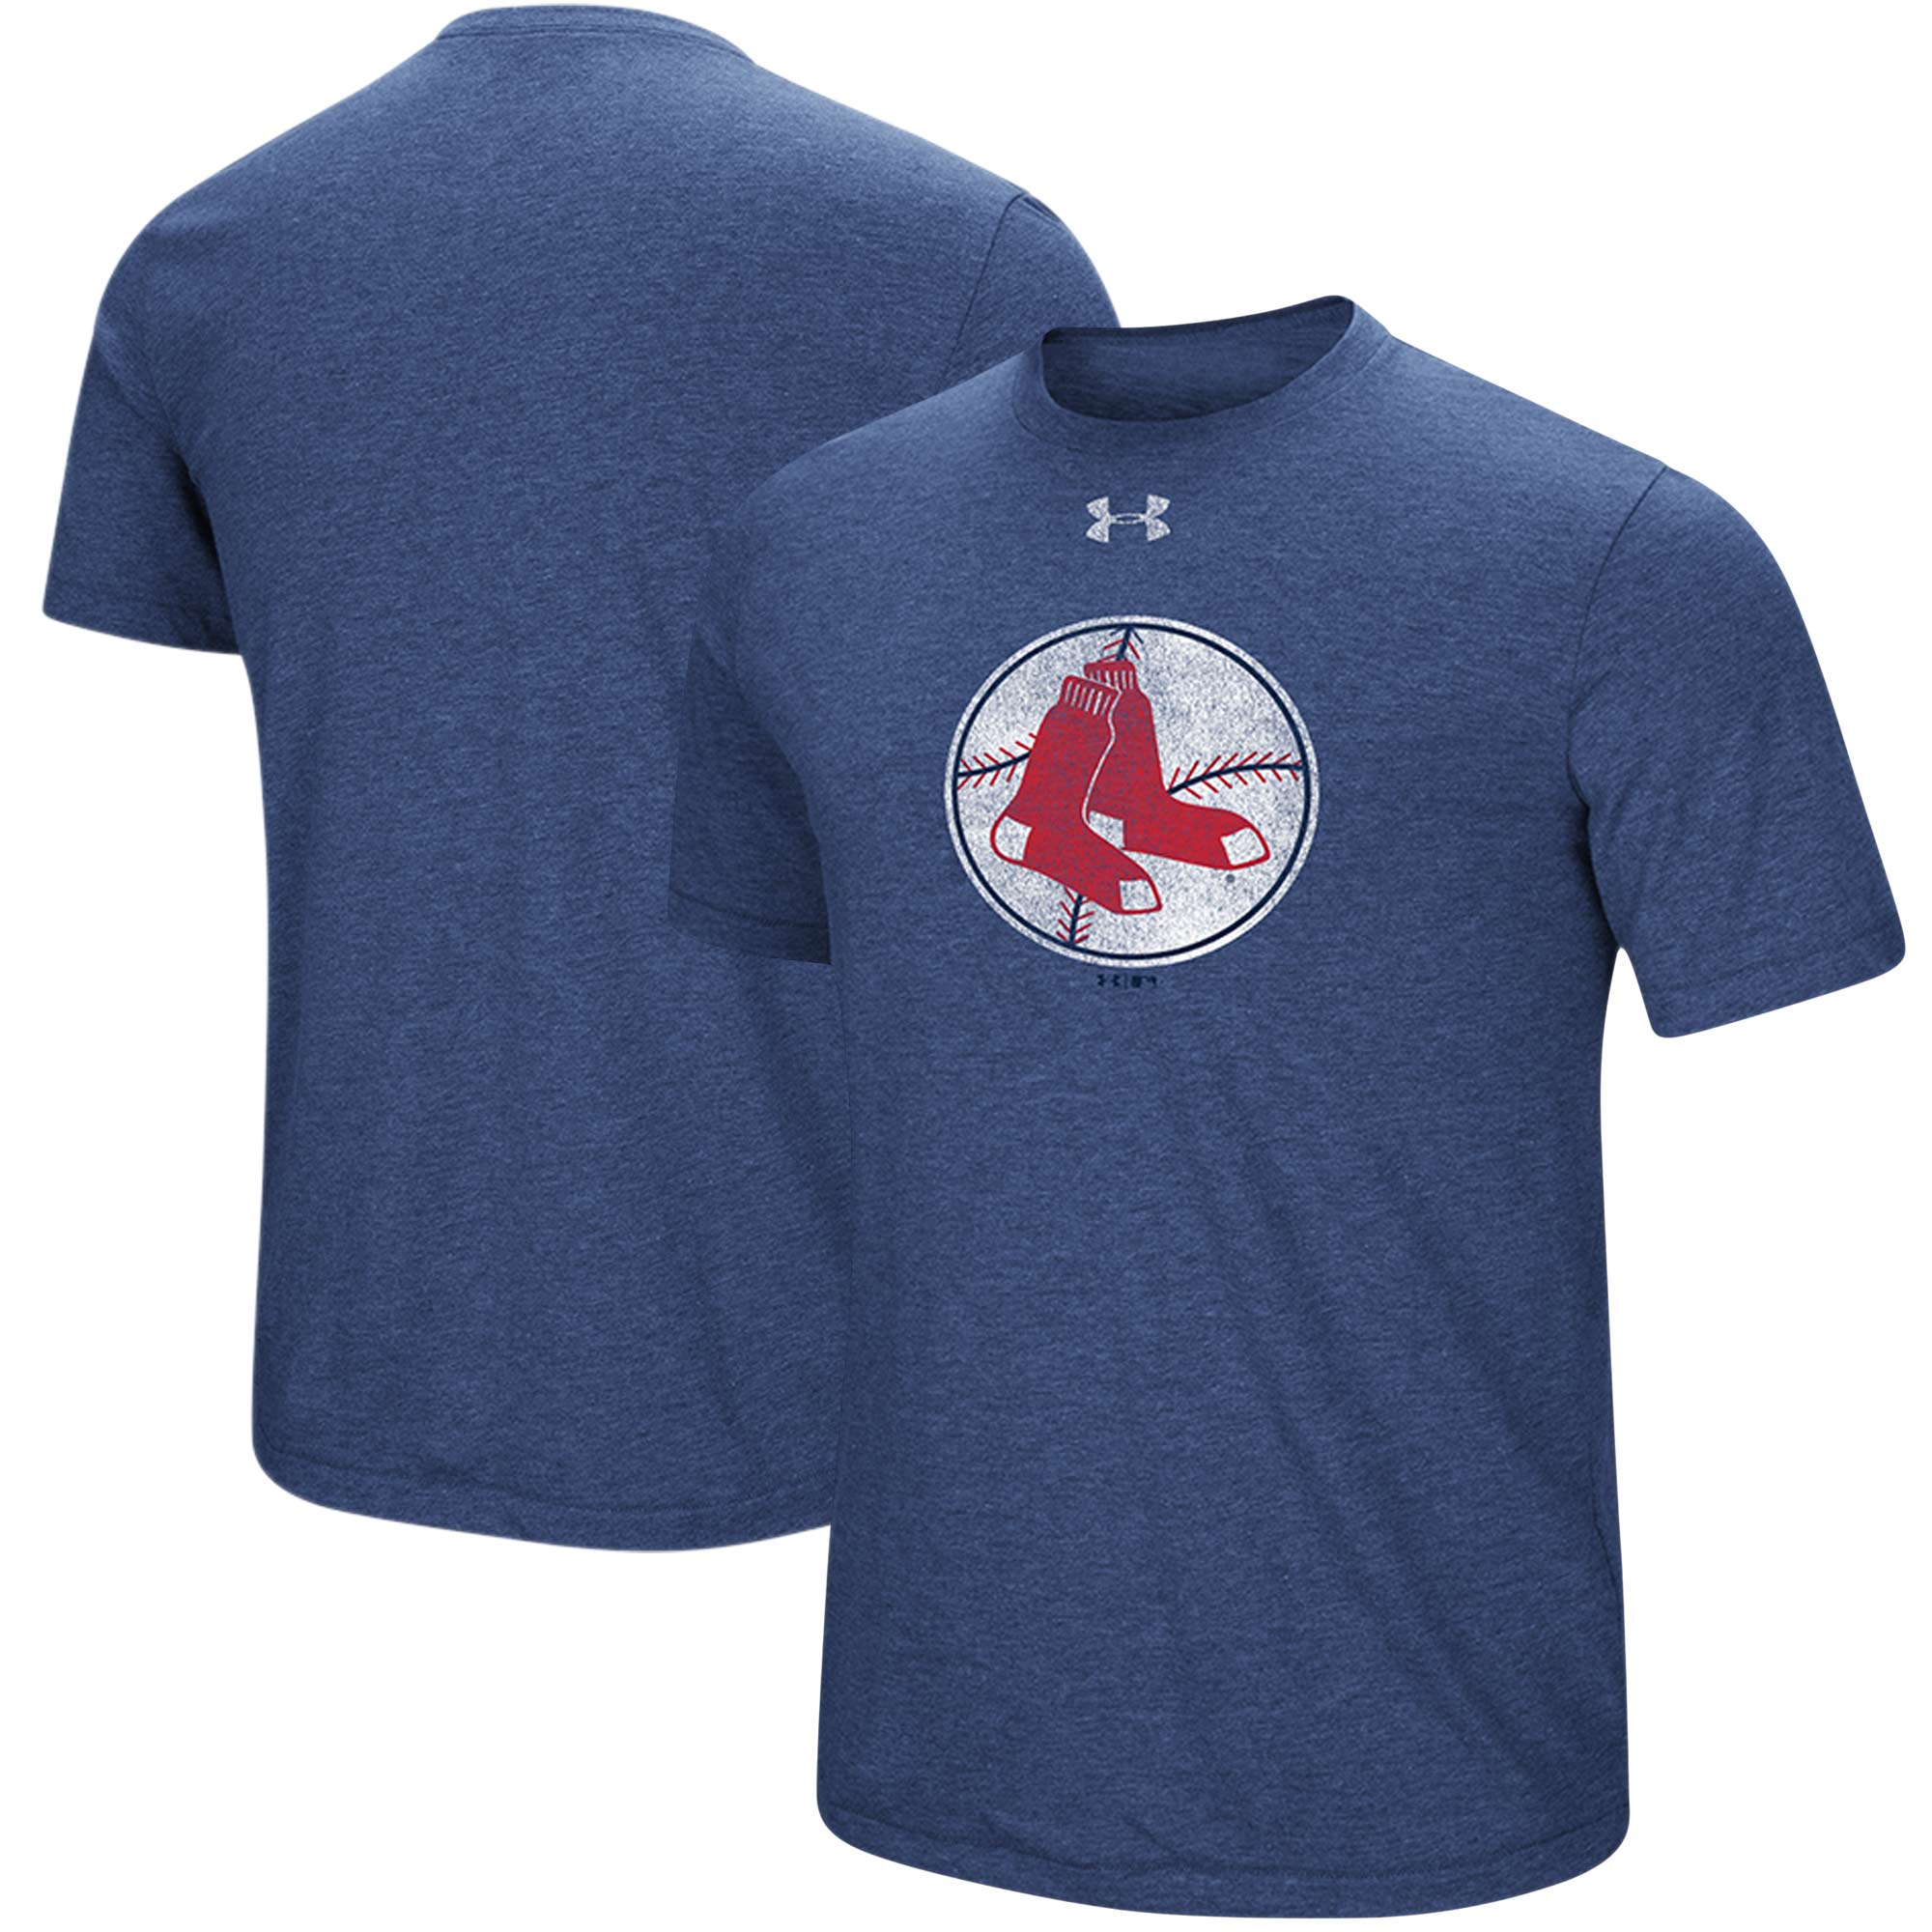 Boston Red Sox Under Armour Cooperstown Collection Mark Performance Tri-Blend T-Shirt - Heathered Navy